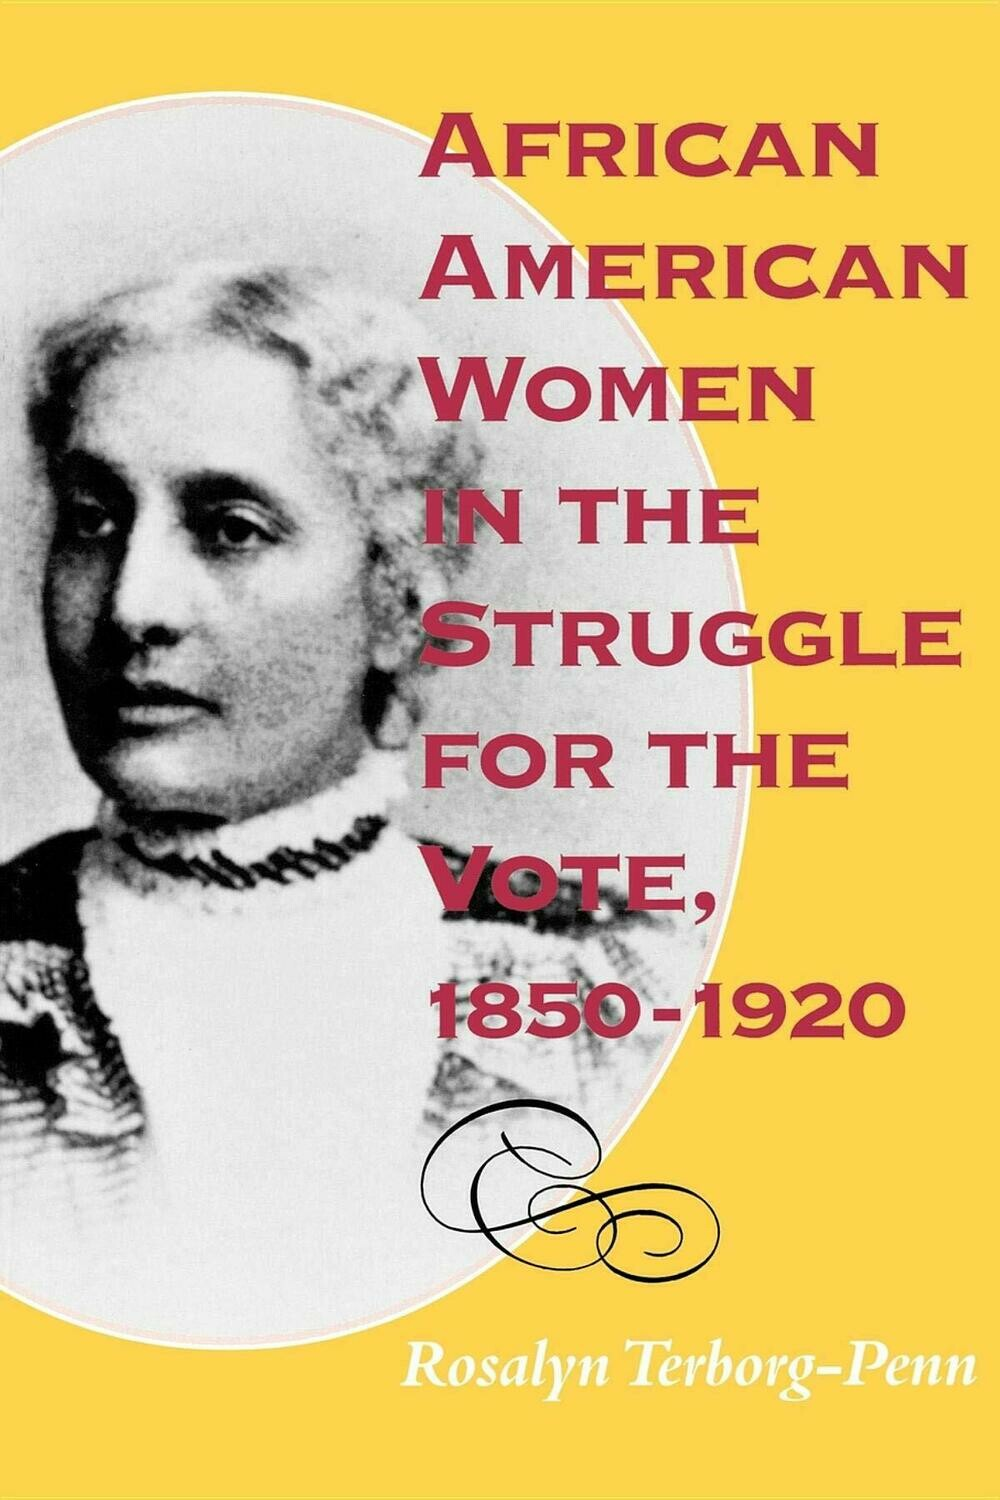 African American Women in the Struggle for the Vote, 1850-1920 by Rosalyn Terborg-Penn